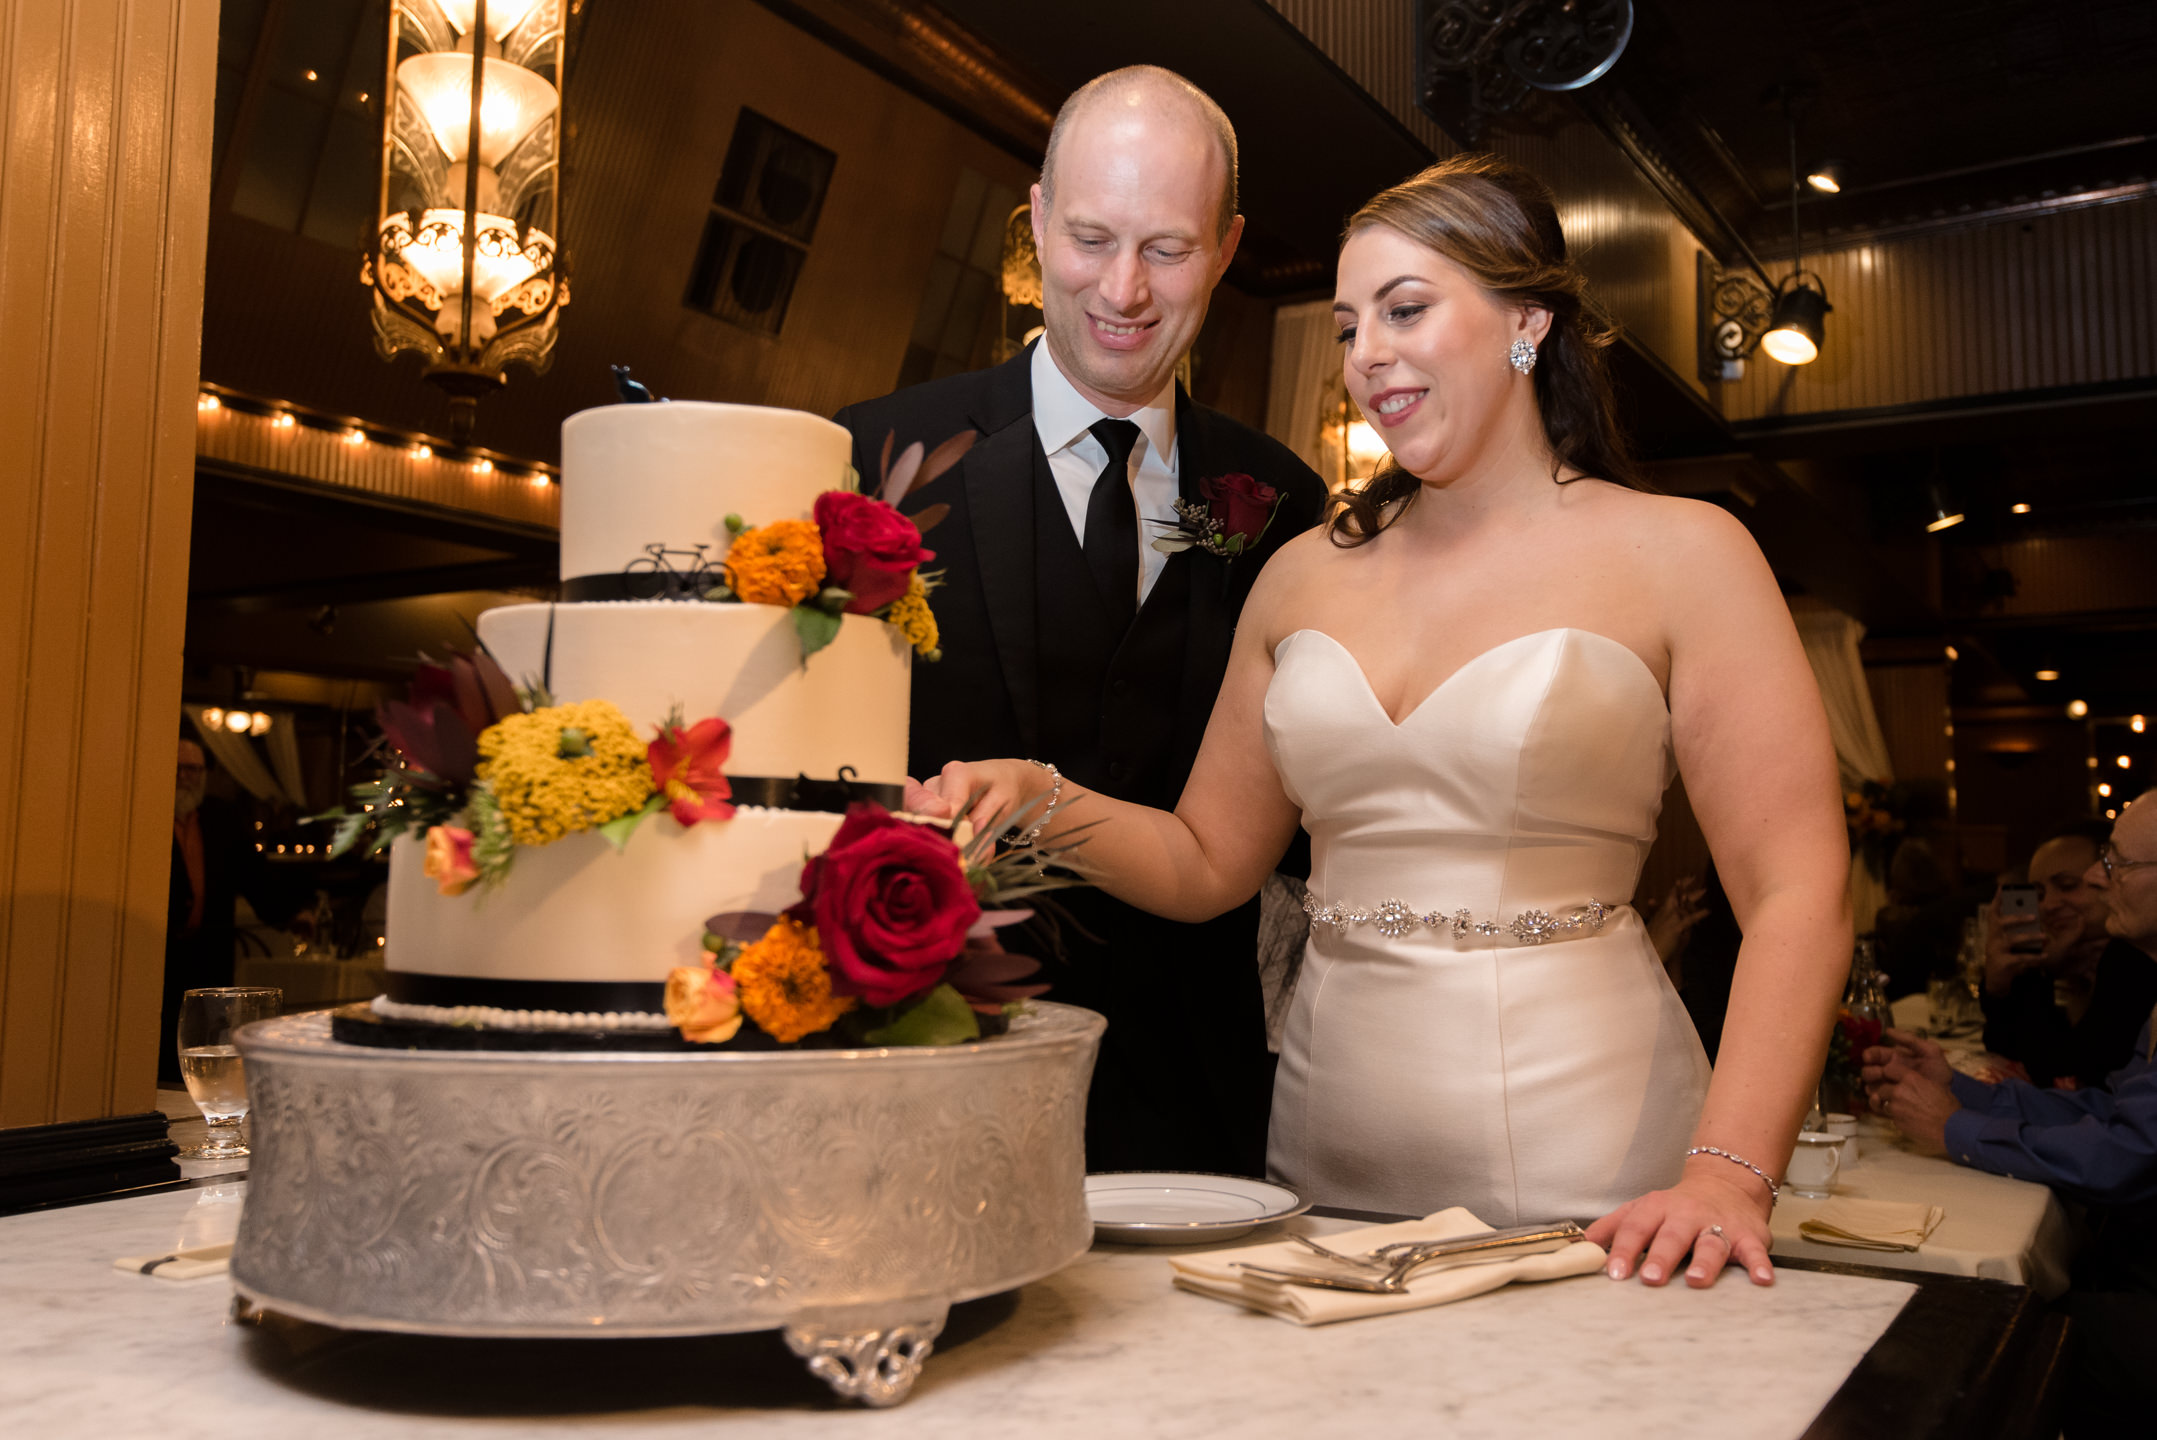 Bride and Groom Cake Cutting at Lake Union Cafe